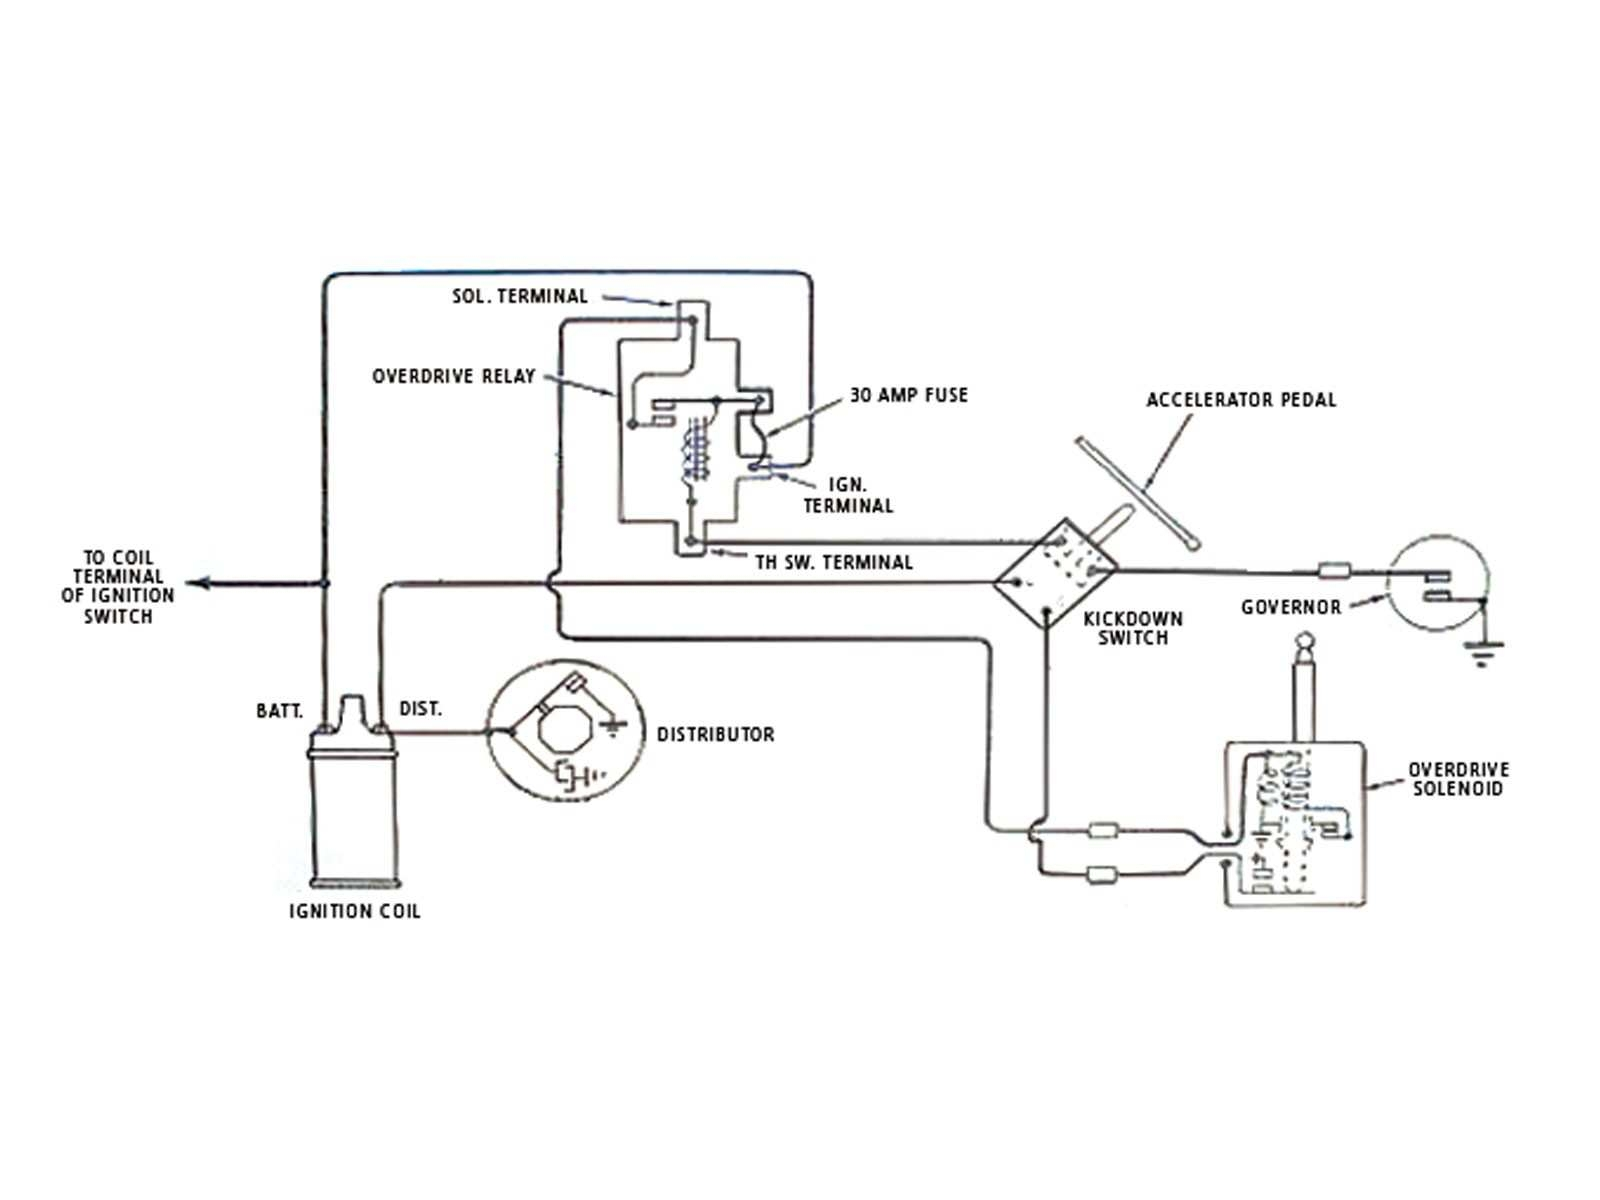 hight resolution of chevy 350 ignition coil wiring diagram ignition coil wiring diagram new basic od troubleshooting chevytalk